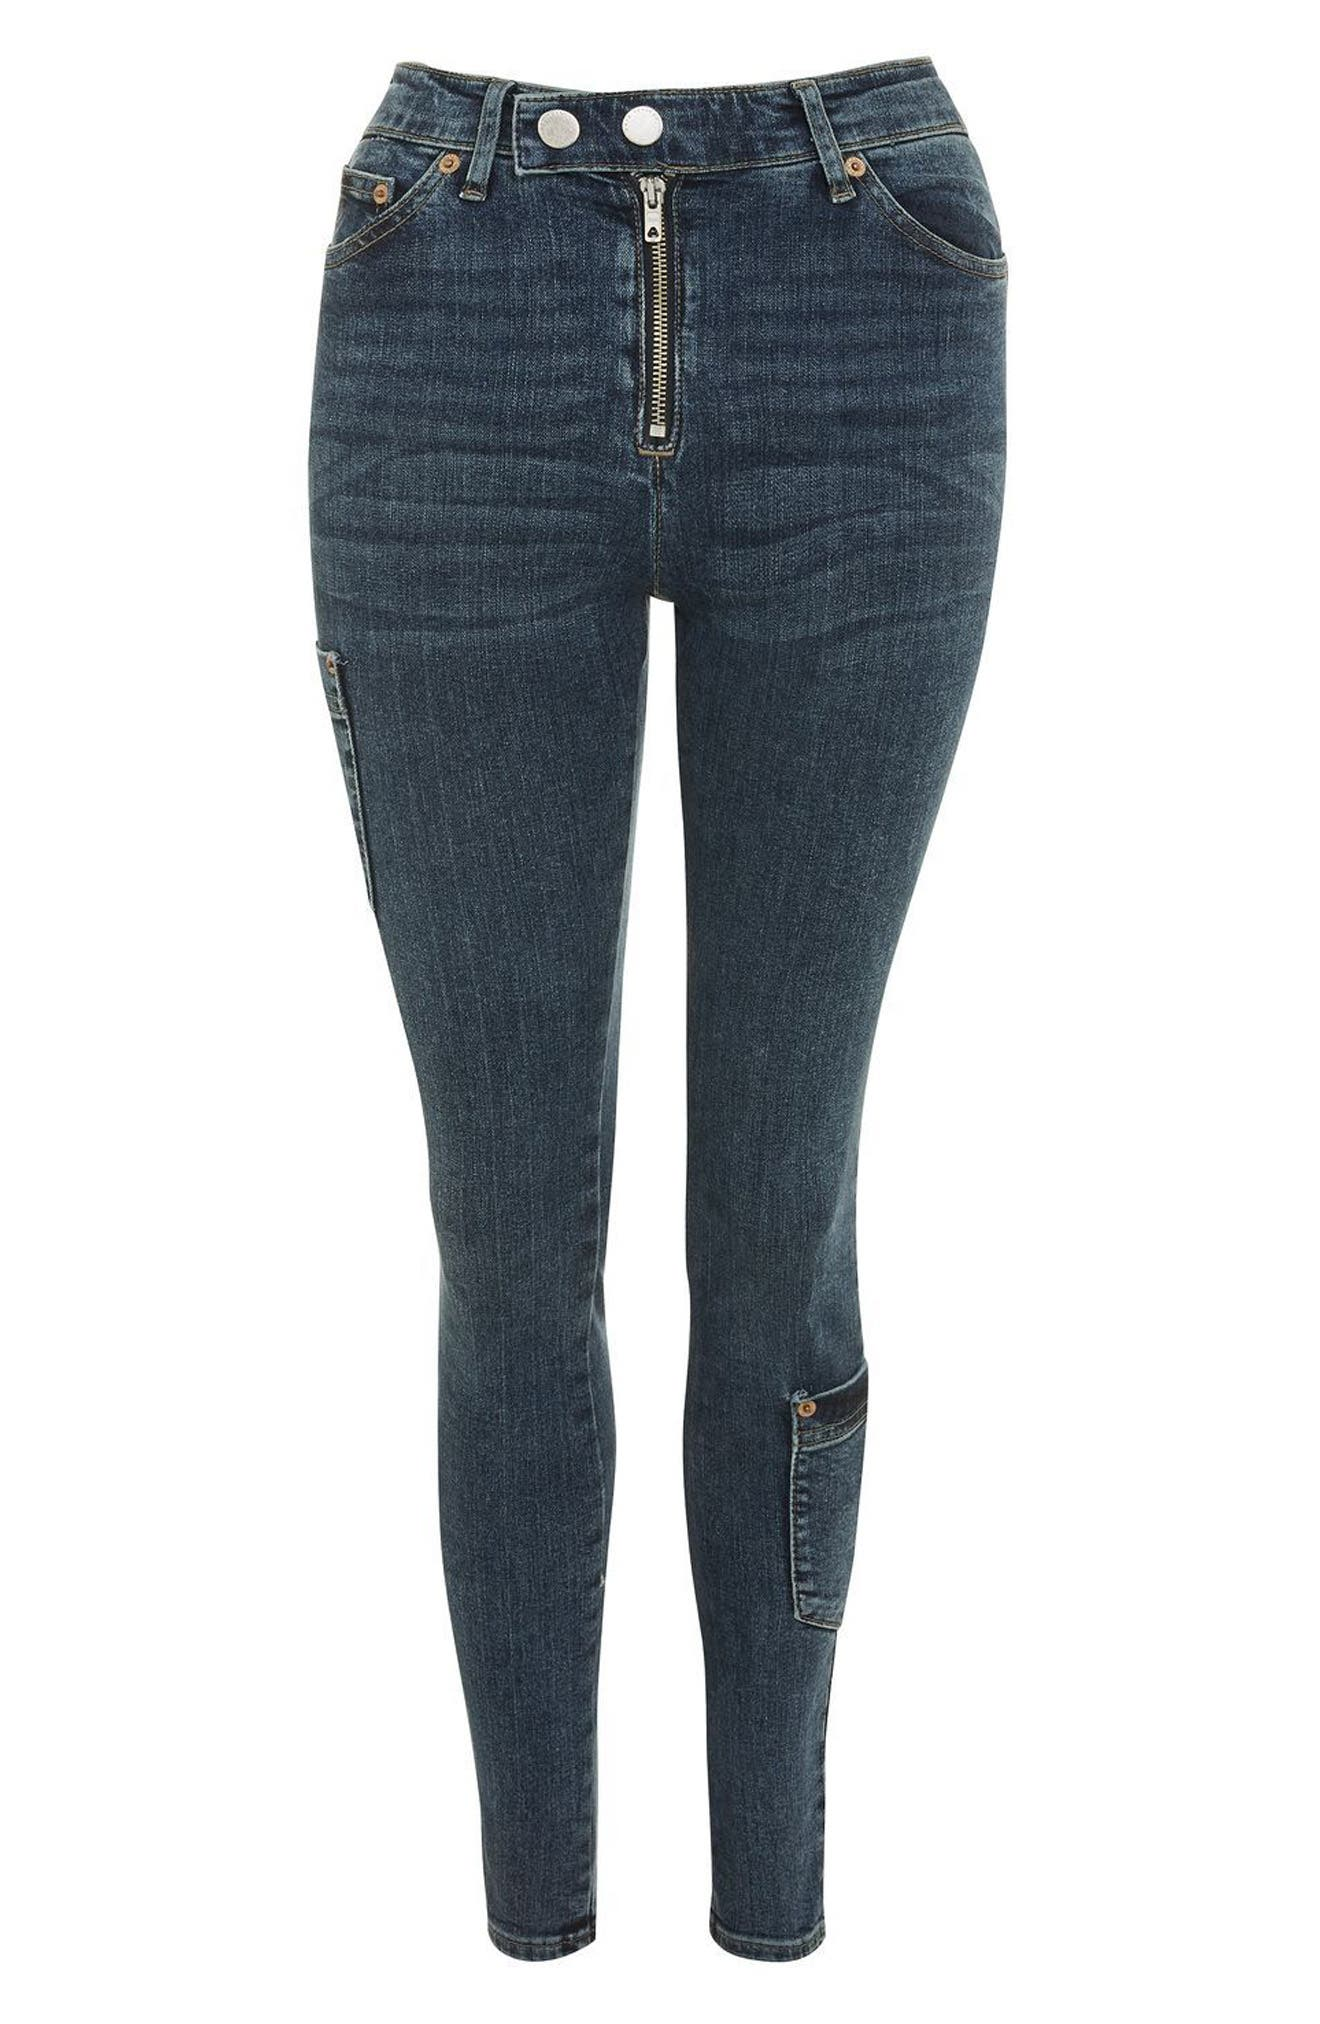 Jamie Utility High Rise Skinny Jeans,                             Alternate thumbnail 3, color,                             Mid Blue Denim